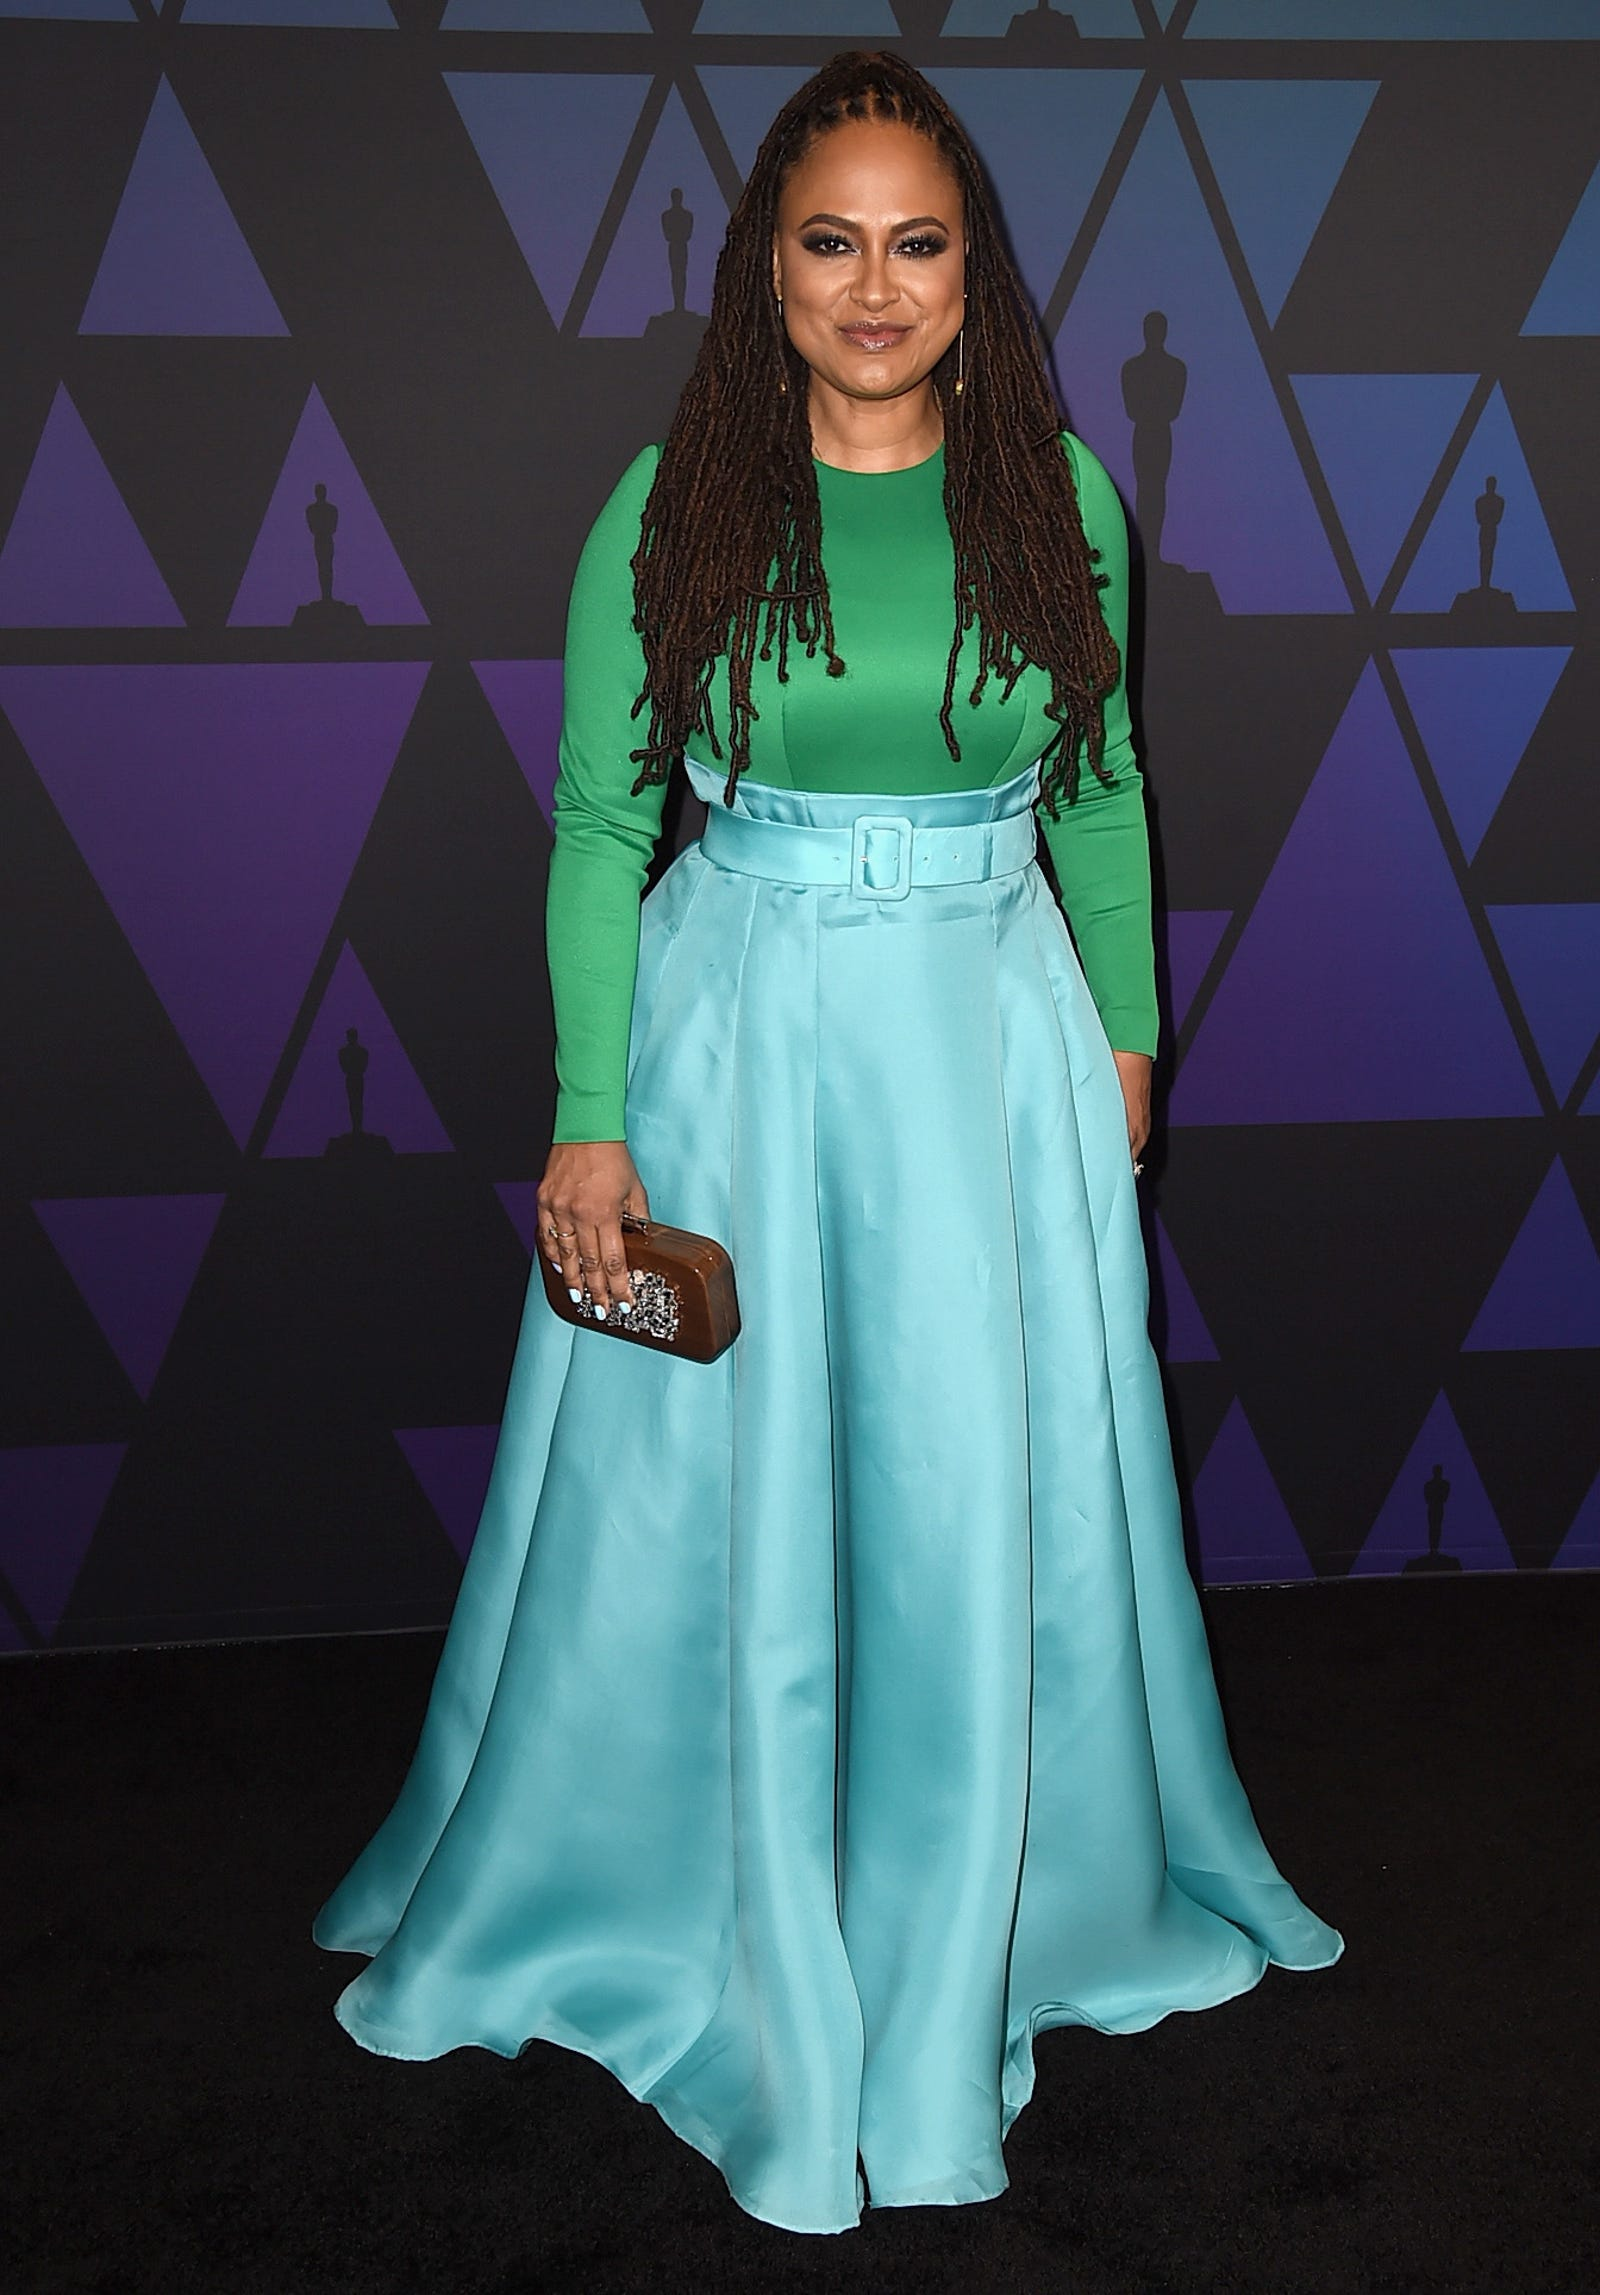 Ava DuVernay attends the Academy of Motion Picture Arts and Sciences' 10th annual Governors Awards on November 18, 2018 in Hollywood, California.